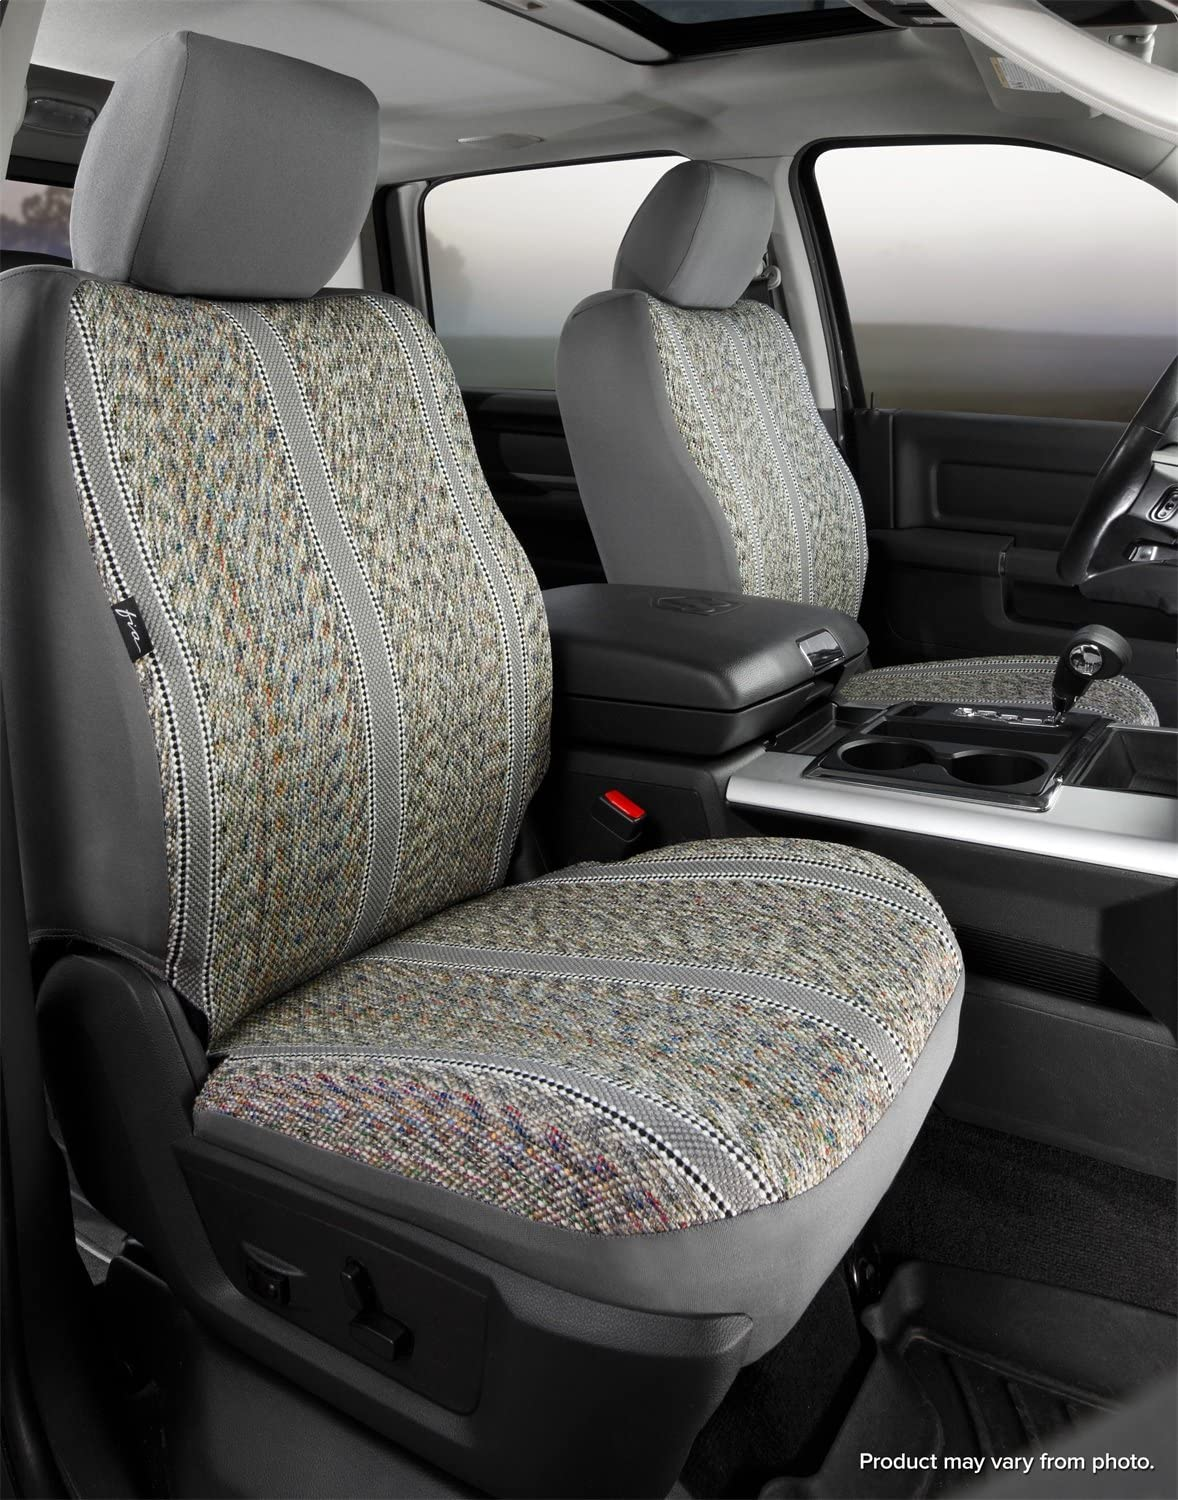 FIA TR49-55 Custom Fit Cover TR49-55 GRAY Front Bucket Seats-Saddle Blanket, Gray